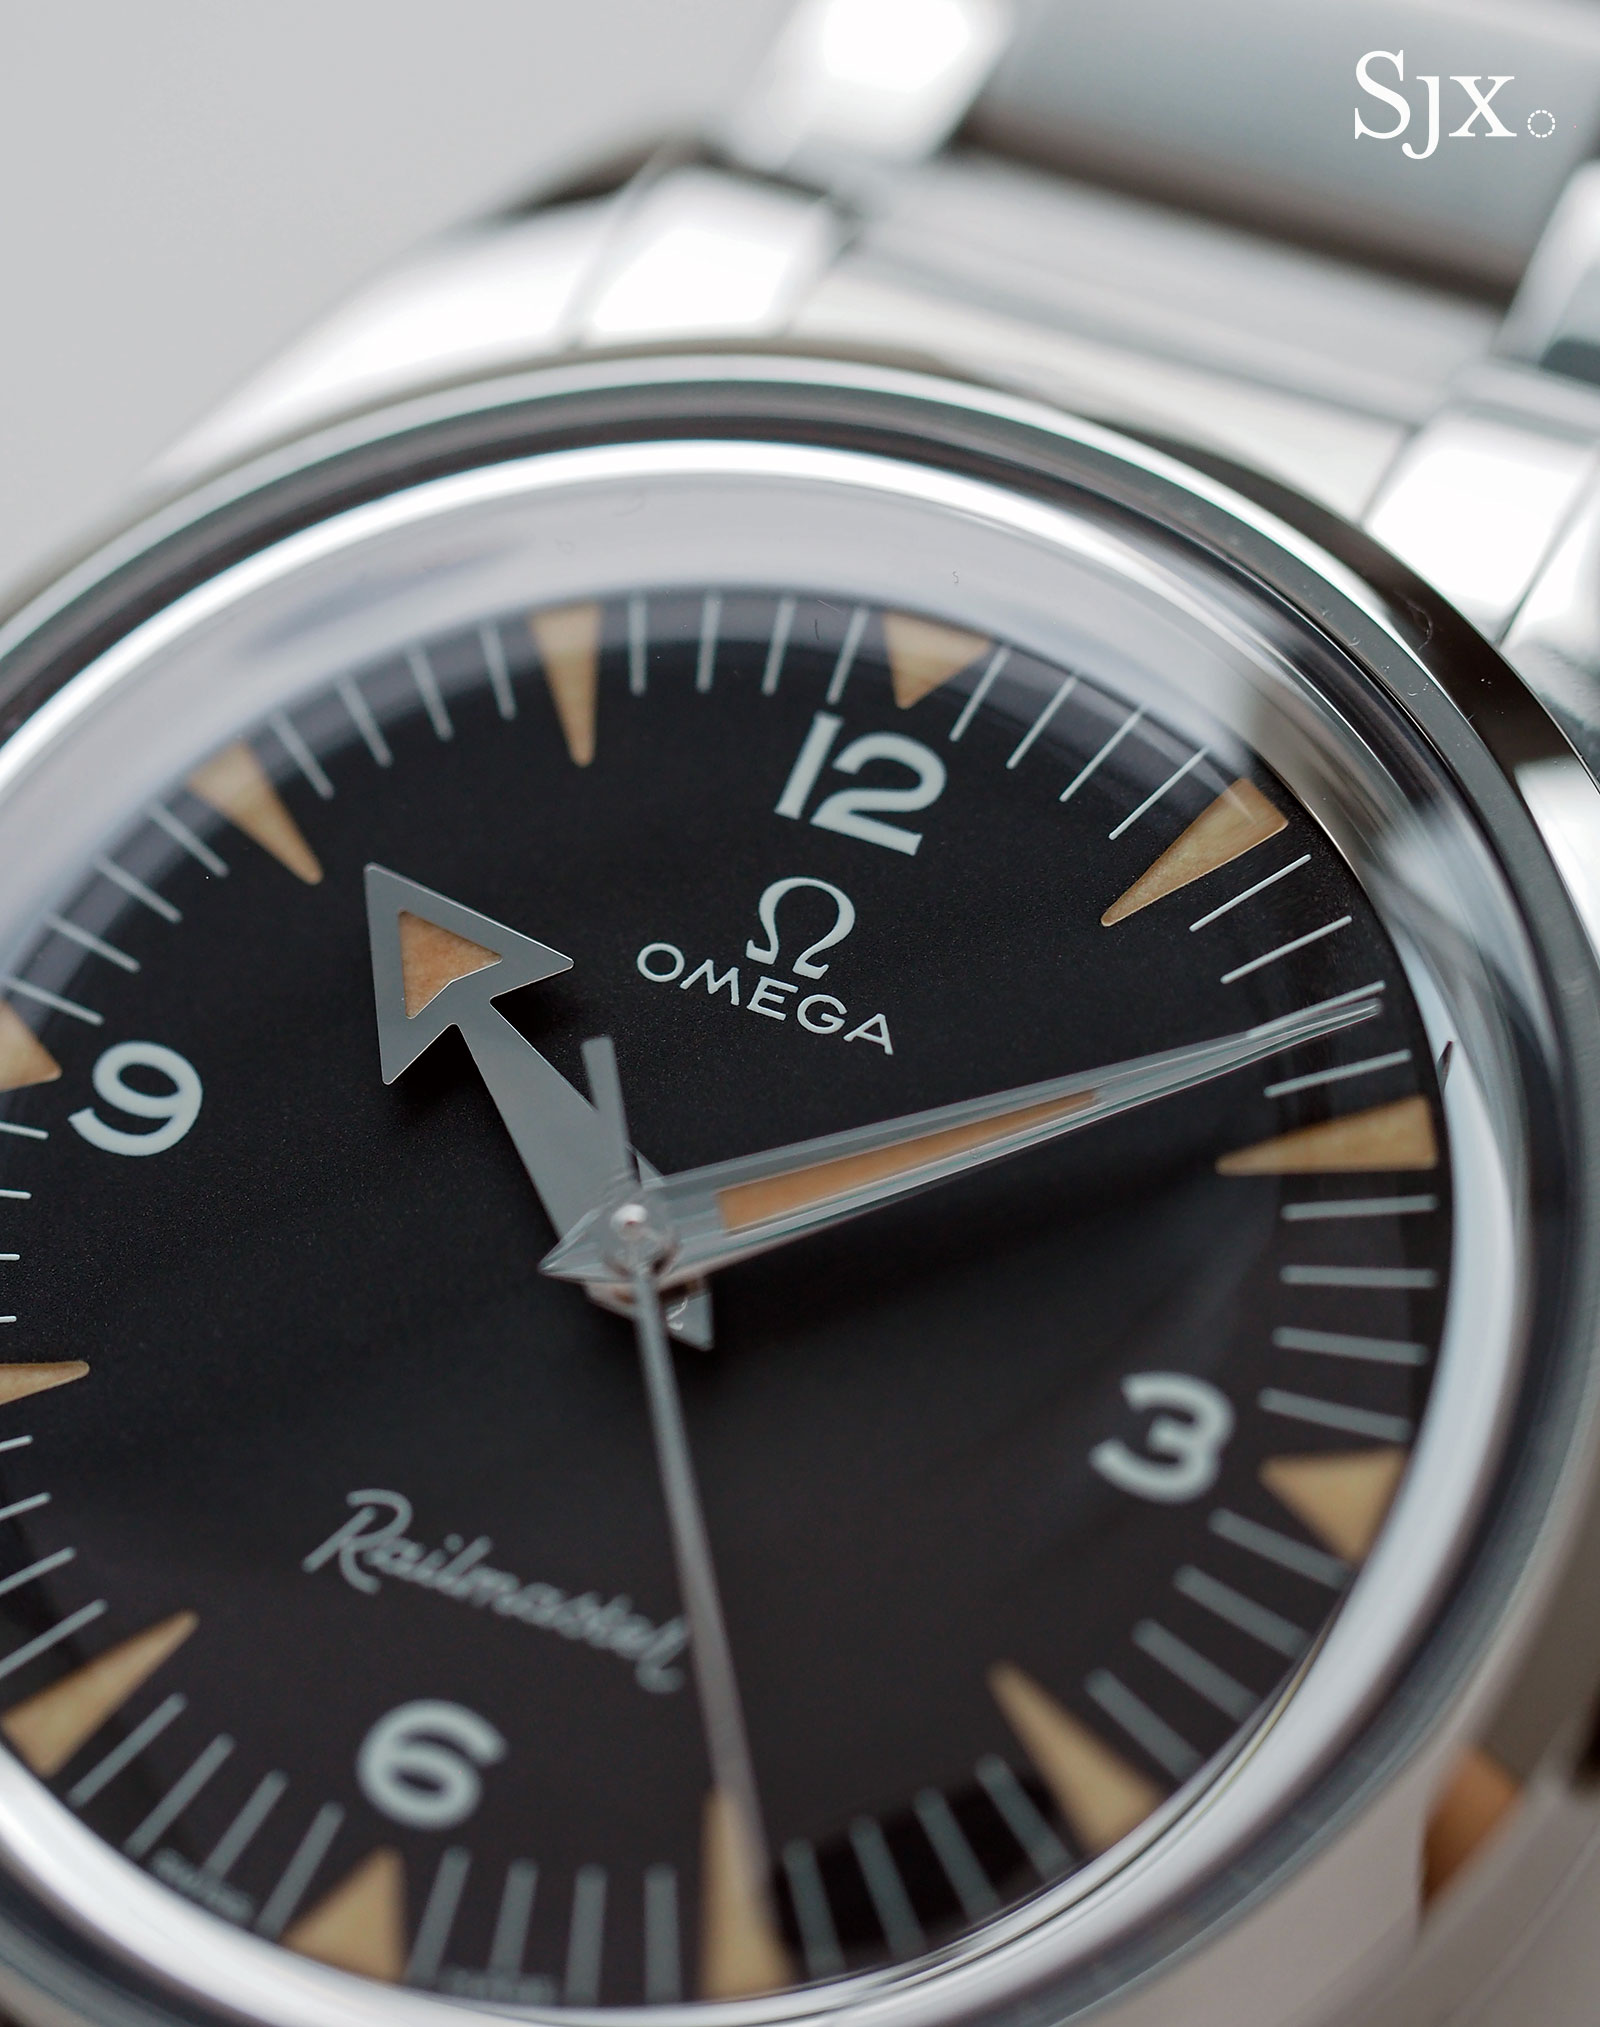 Omega 1957 Trilogy Railmaster 2